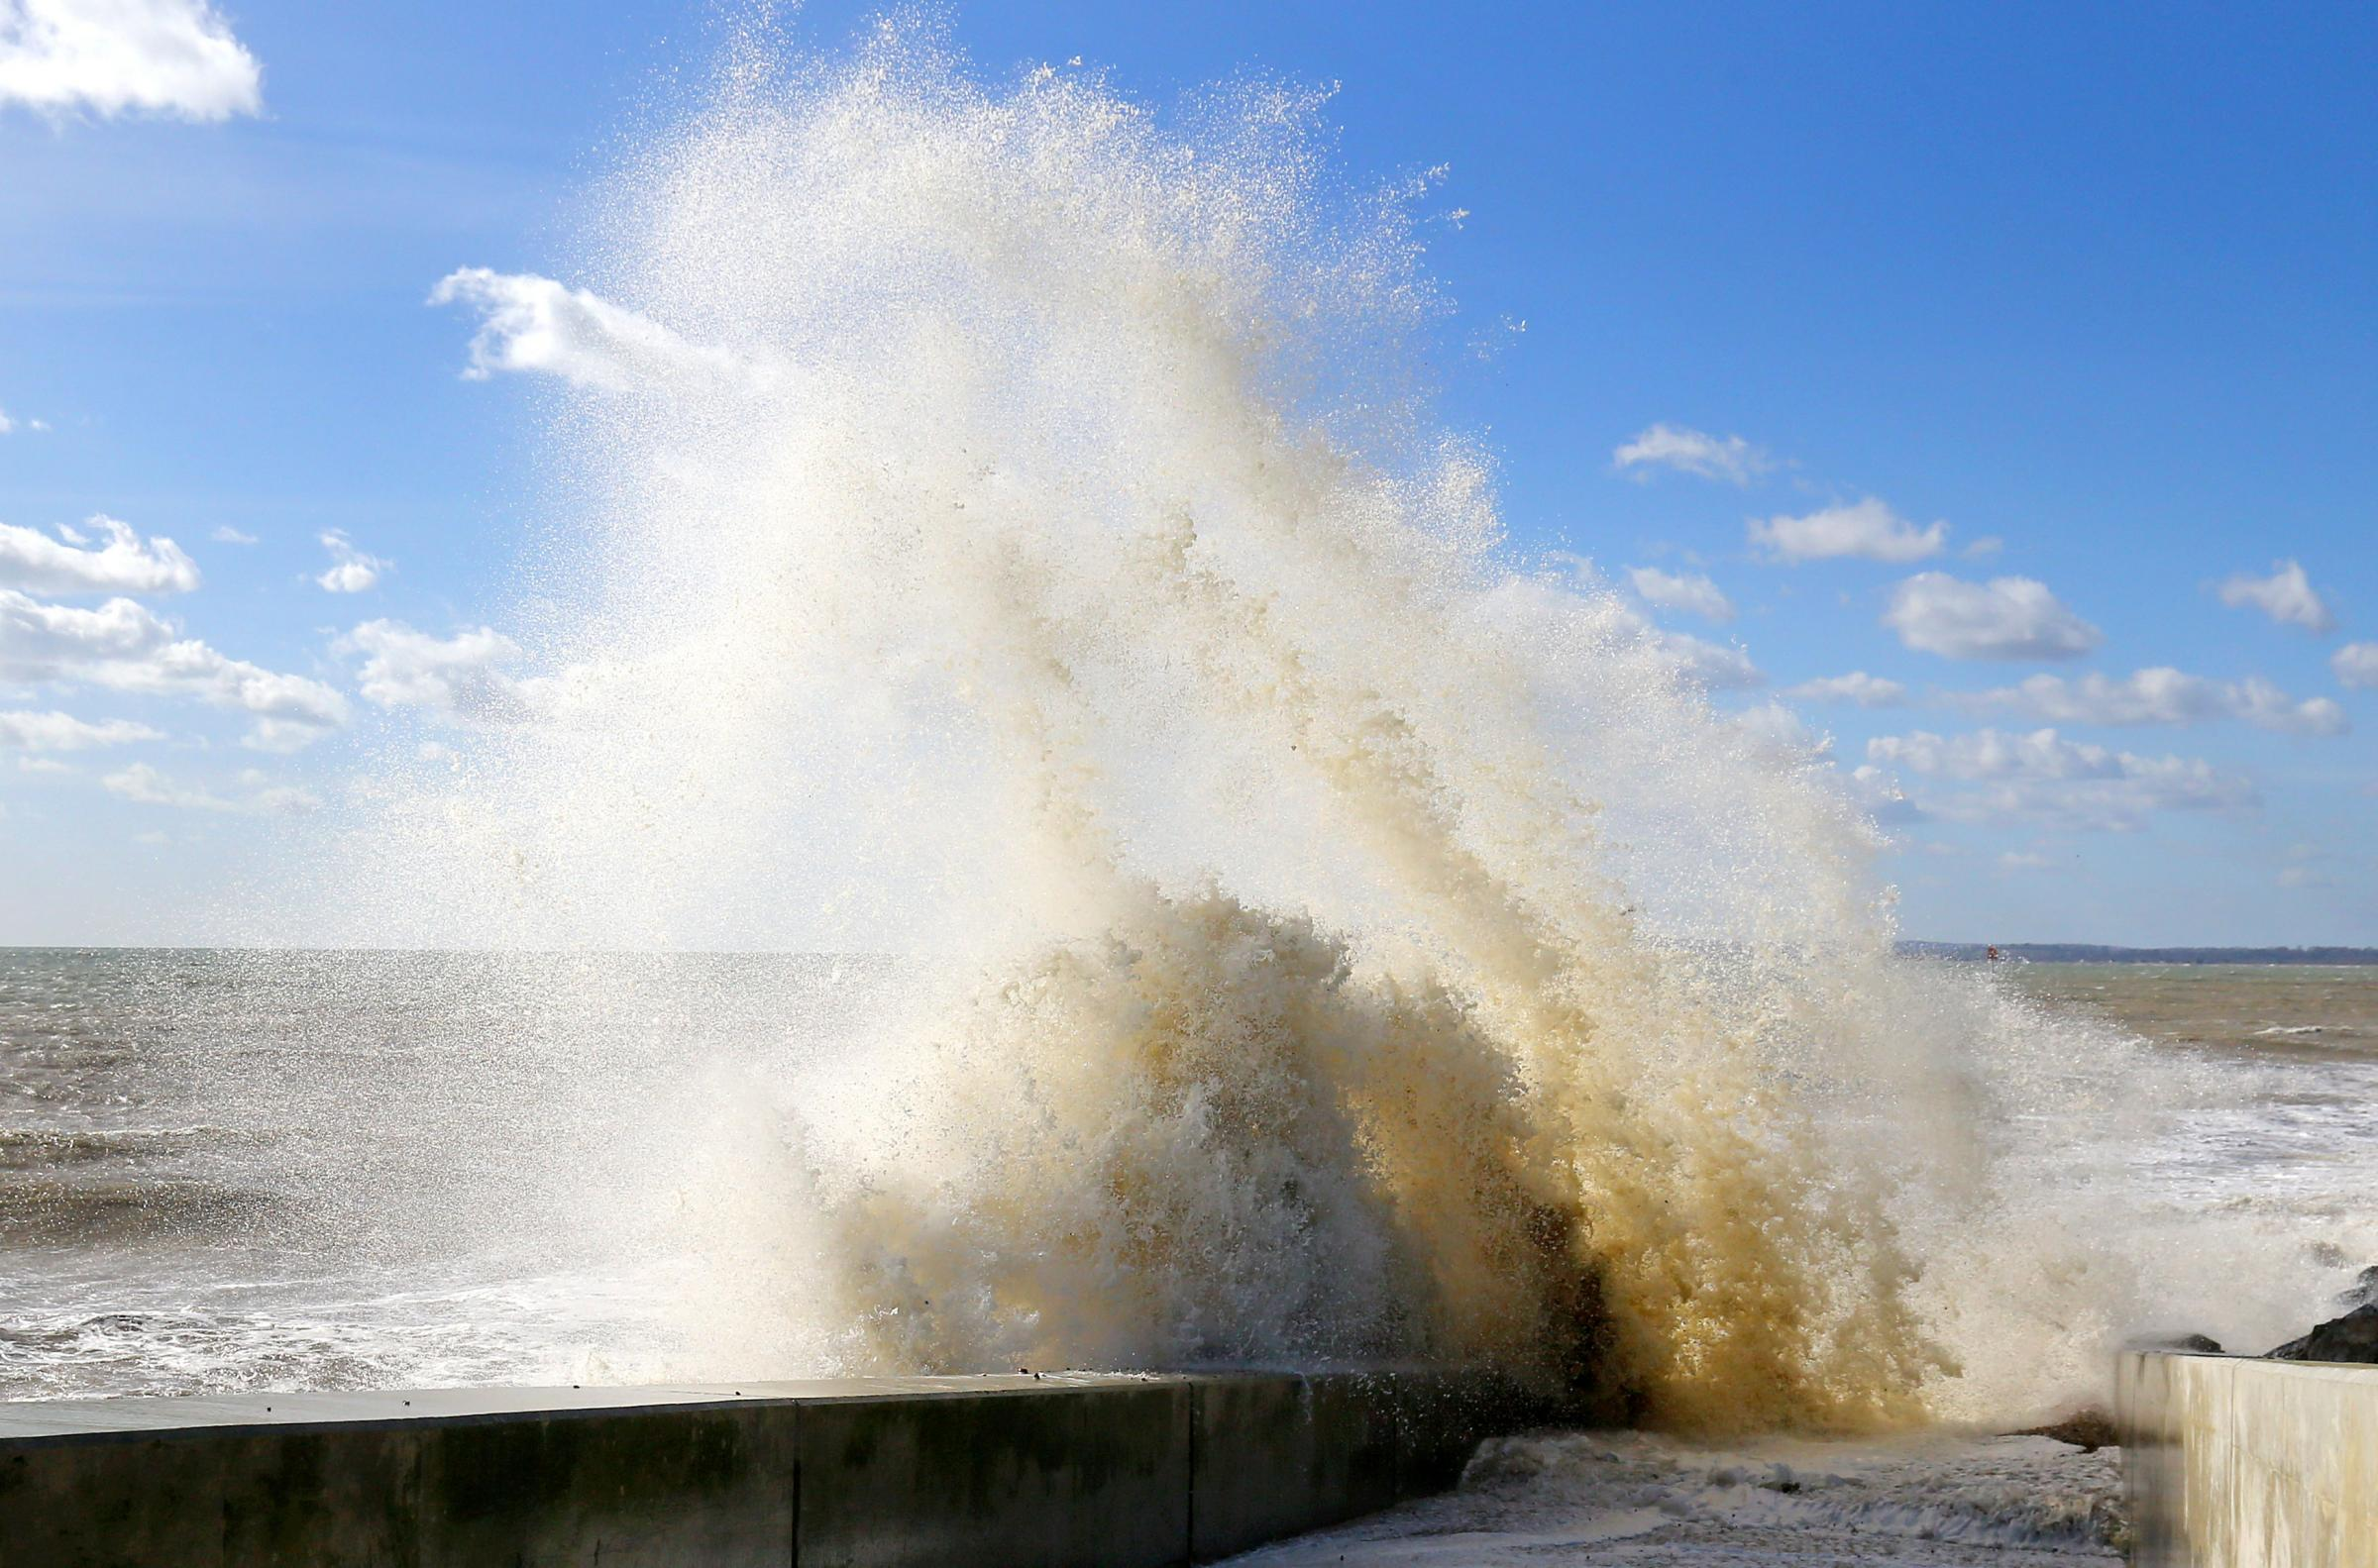 Waves crash against the sea defences in Camber, East Sussex, as the unsettled and windy weather continues across the UK. Picture: PA